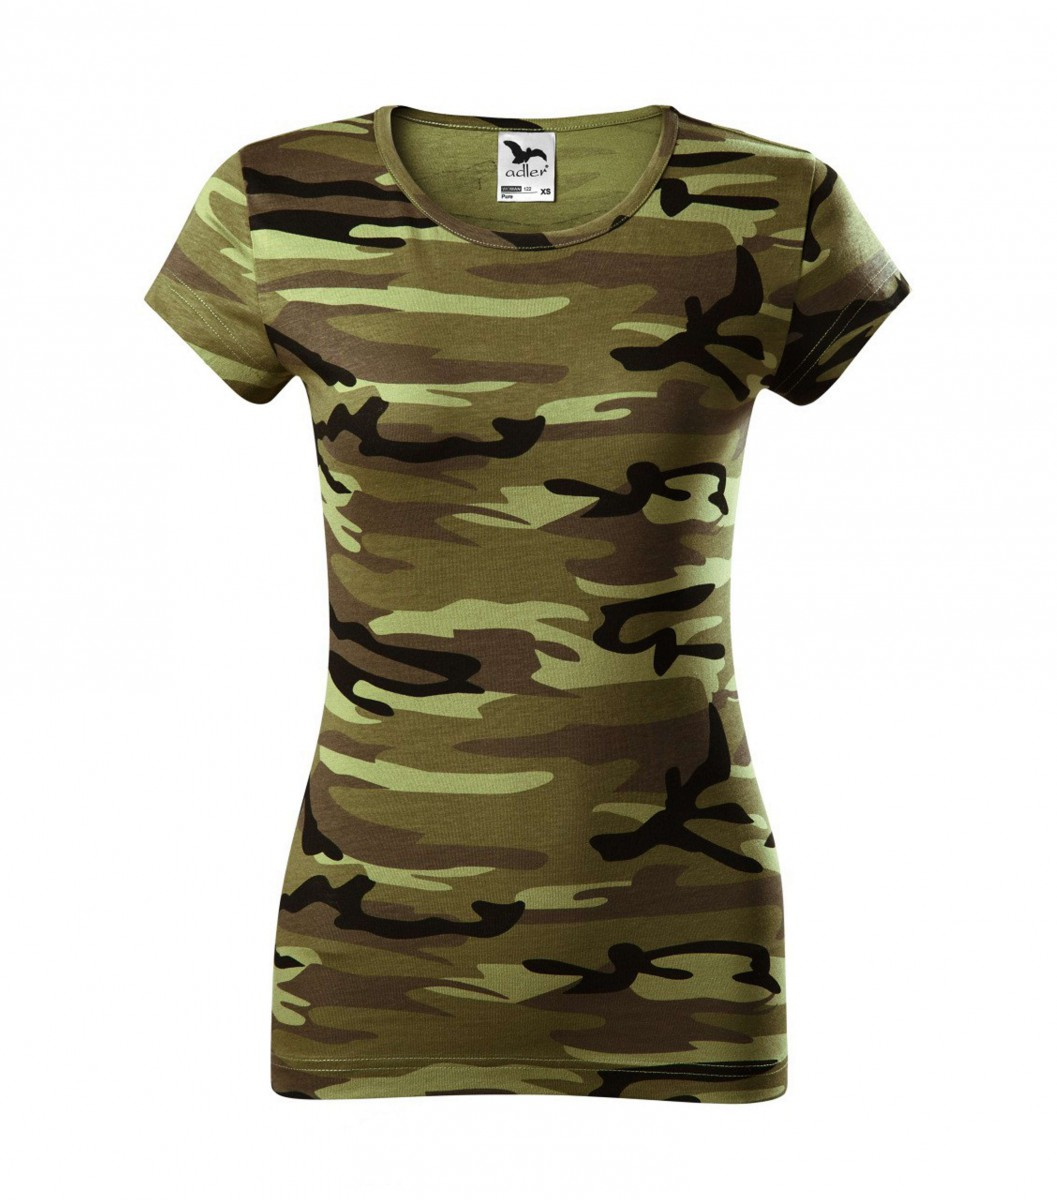 Trička pro páry King and Queen 061 Camouflage Green. ZOBRAZIT DETAIL ·  ZOBRAZIT DETAIL · ZOBRAZIT DETAIL · ZOBRAZIT DETAIL 99fac323e0